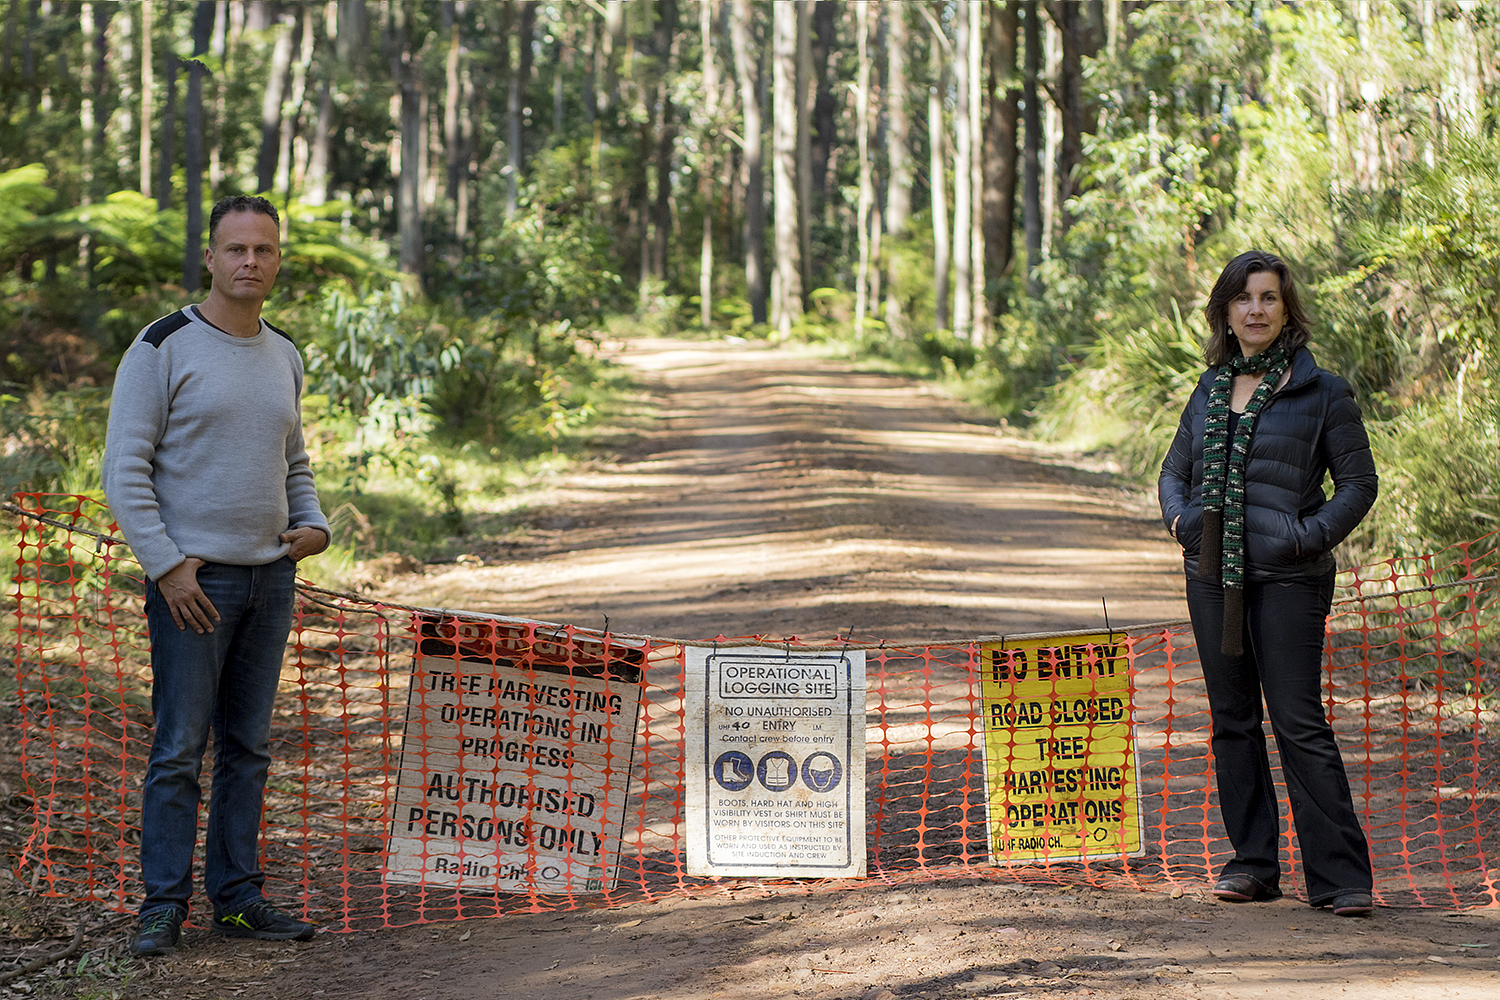 Greens seek to beef-up forestry laws - Dawn Walker MP